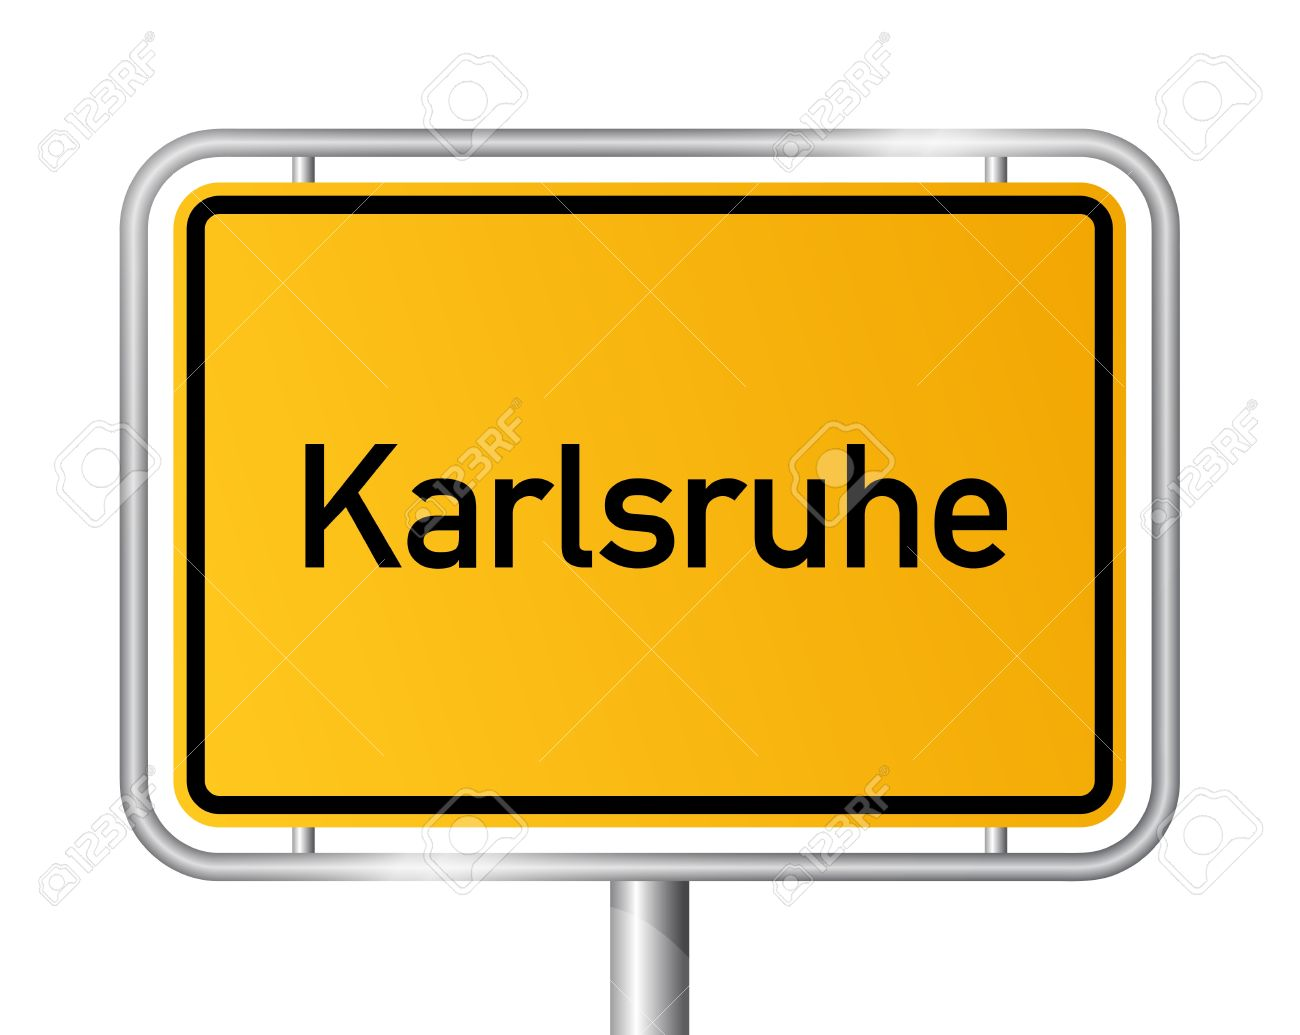 City Limit Sign KARLSRUHE Against White Background.